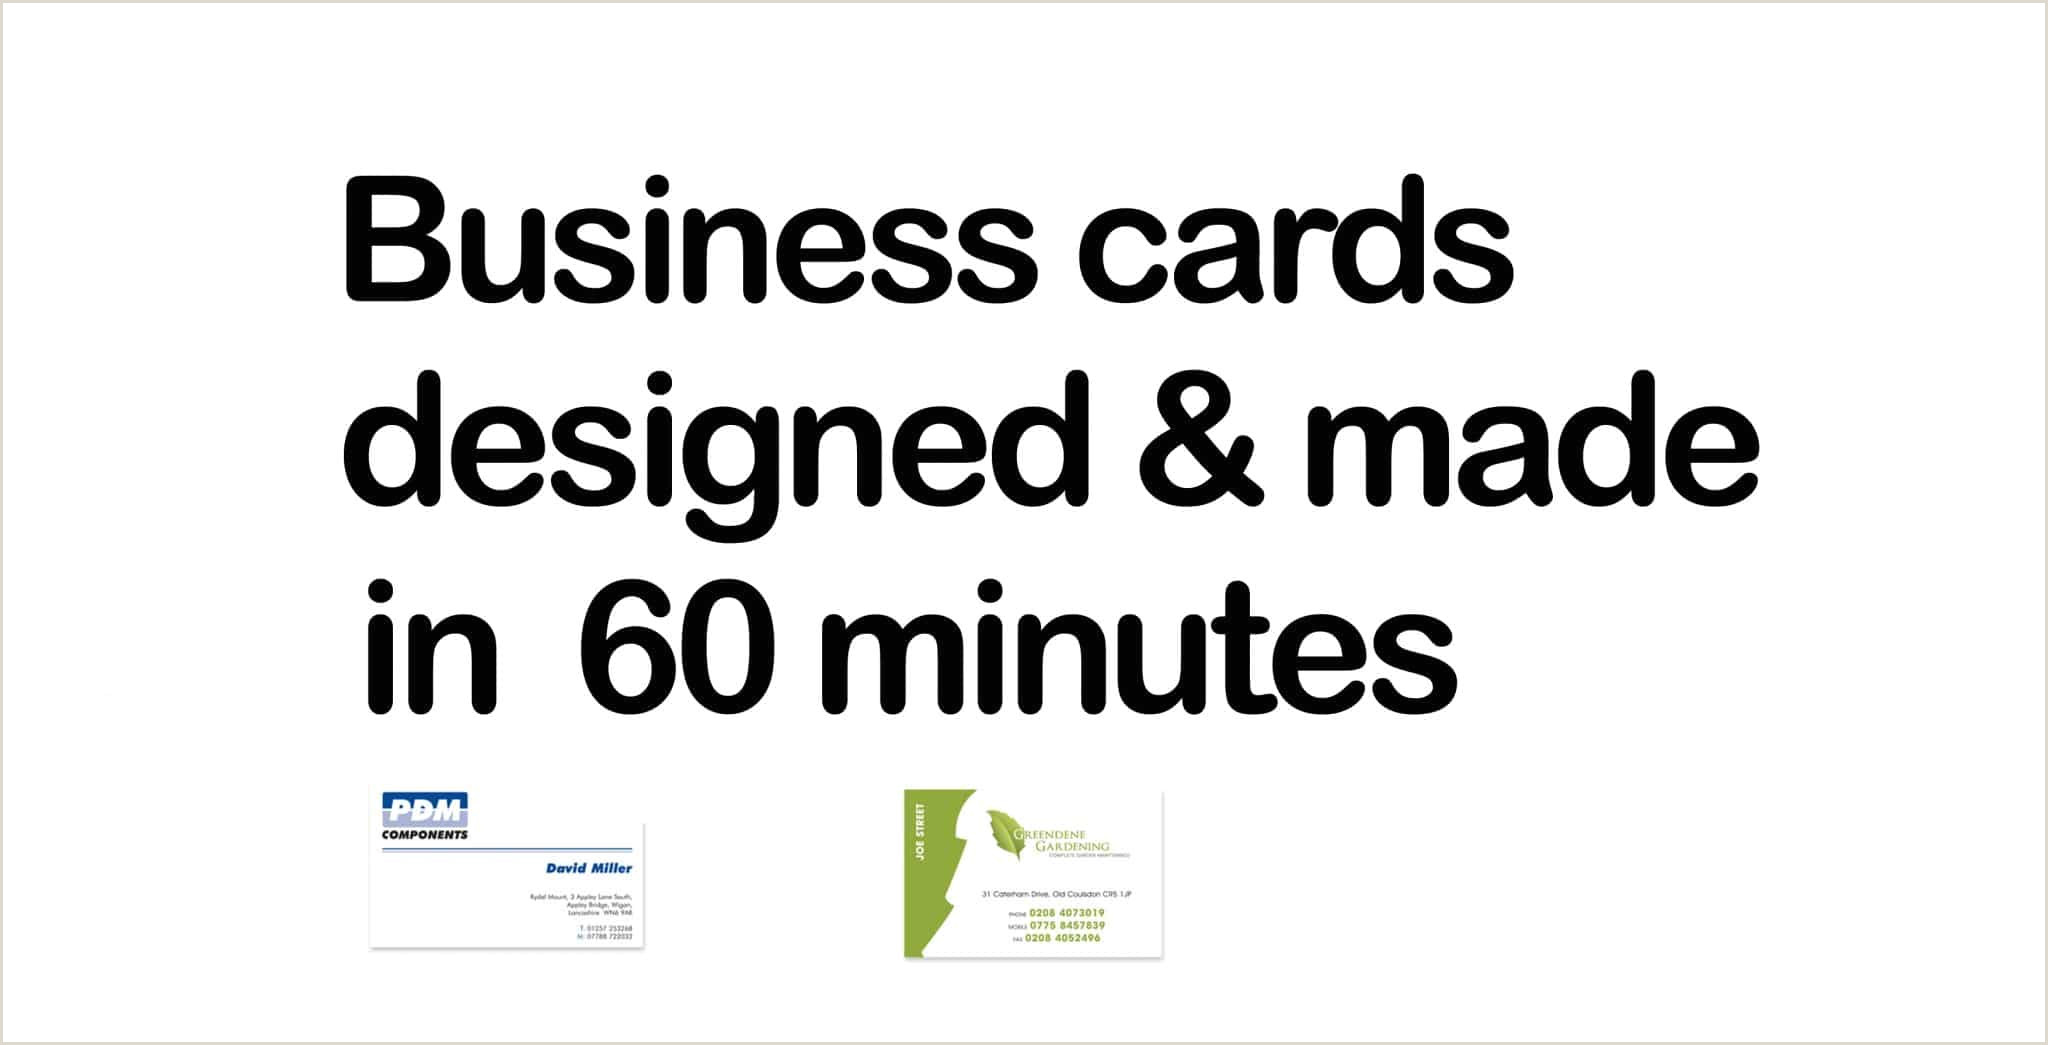 Where To Print Business Cards Same Day Instant Business Cards Same Day Collection In London Paddington